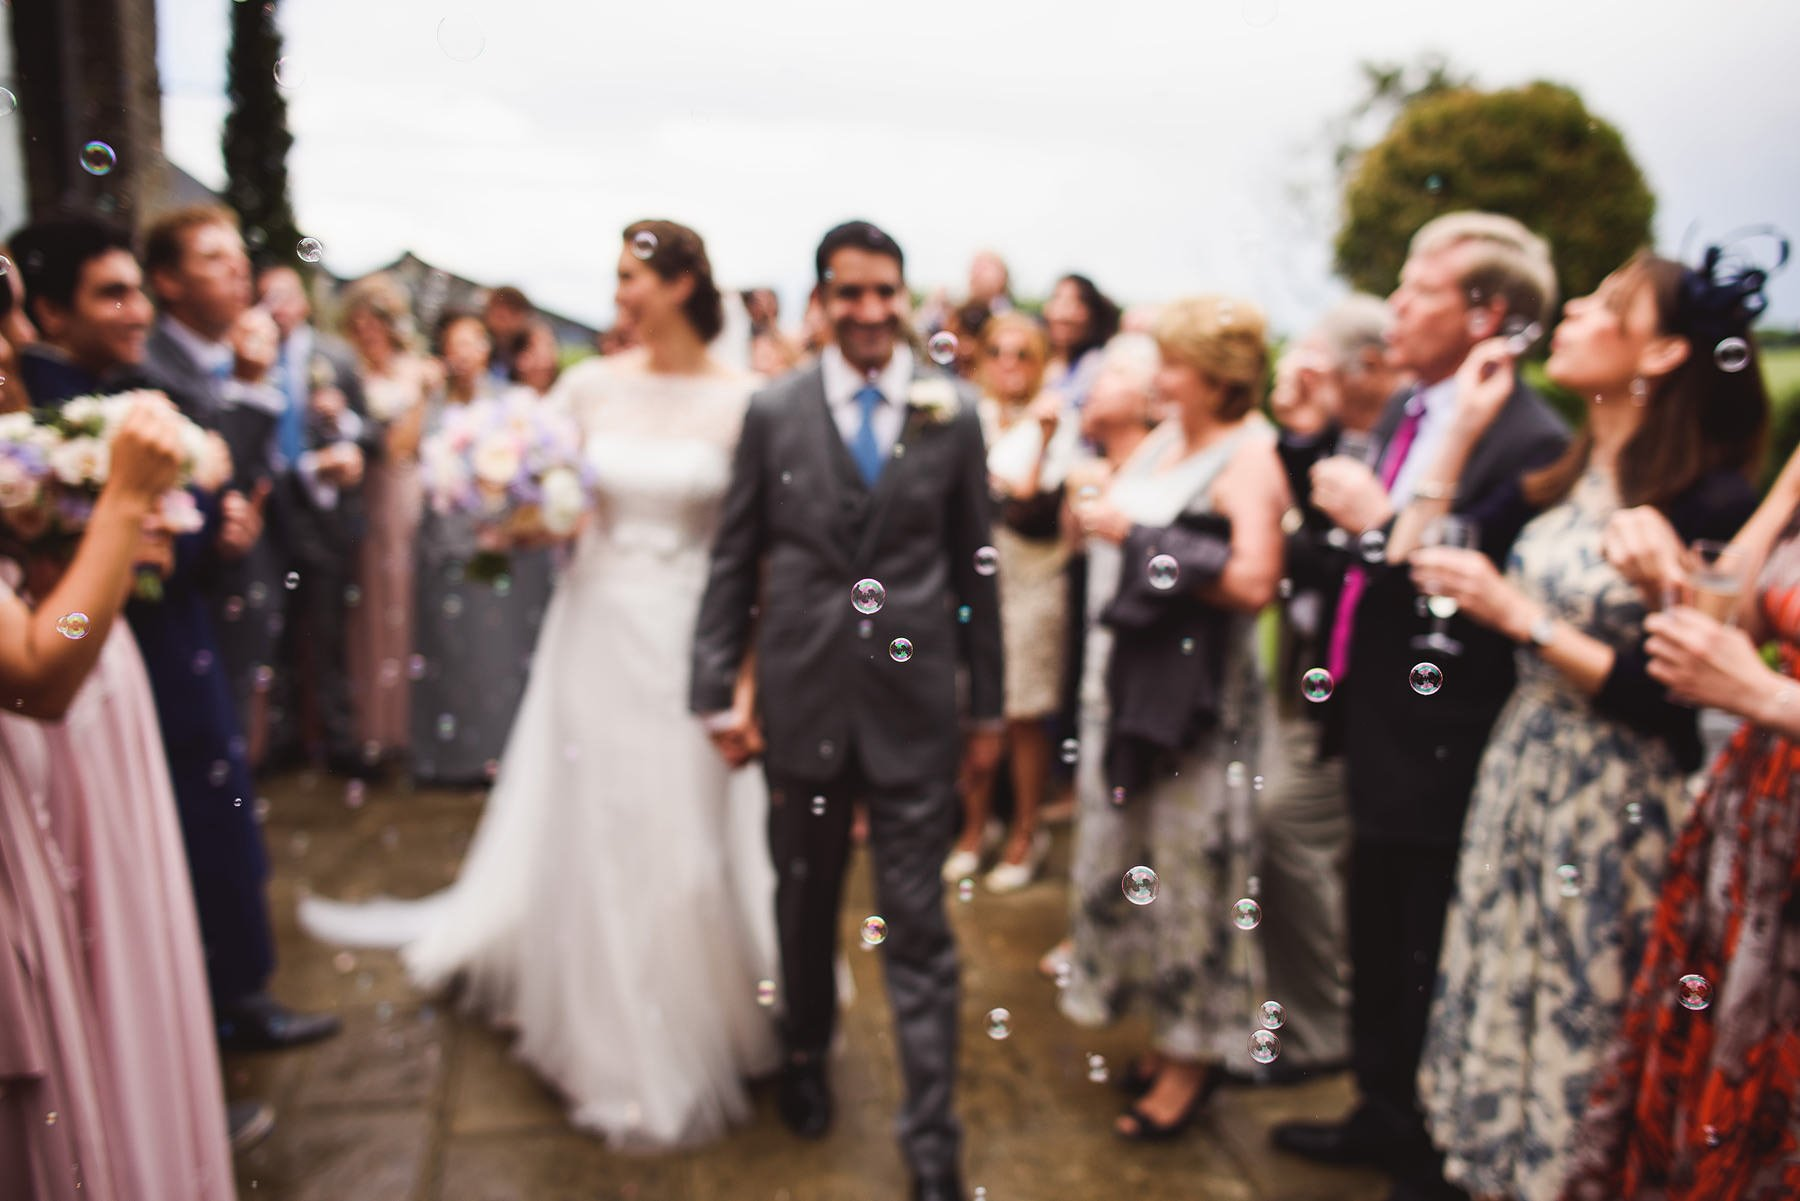 bubbles as confetti at a wedding